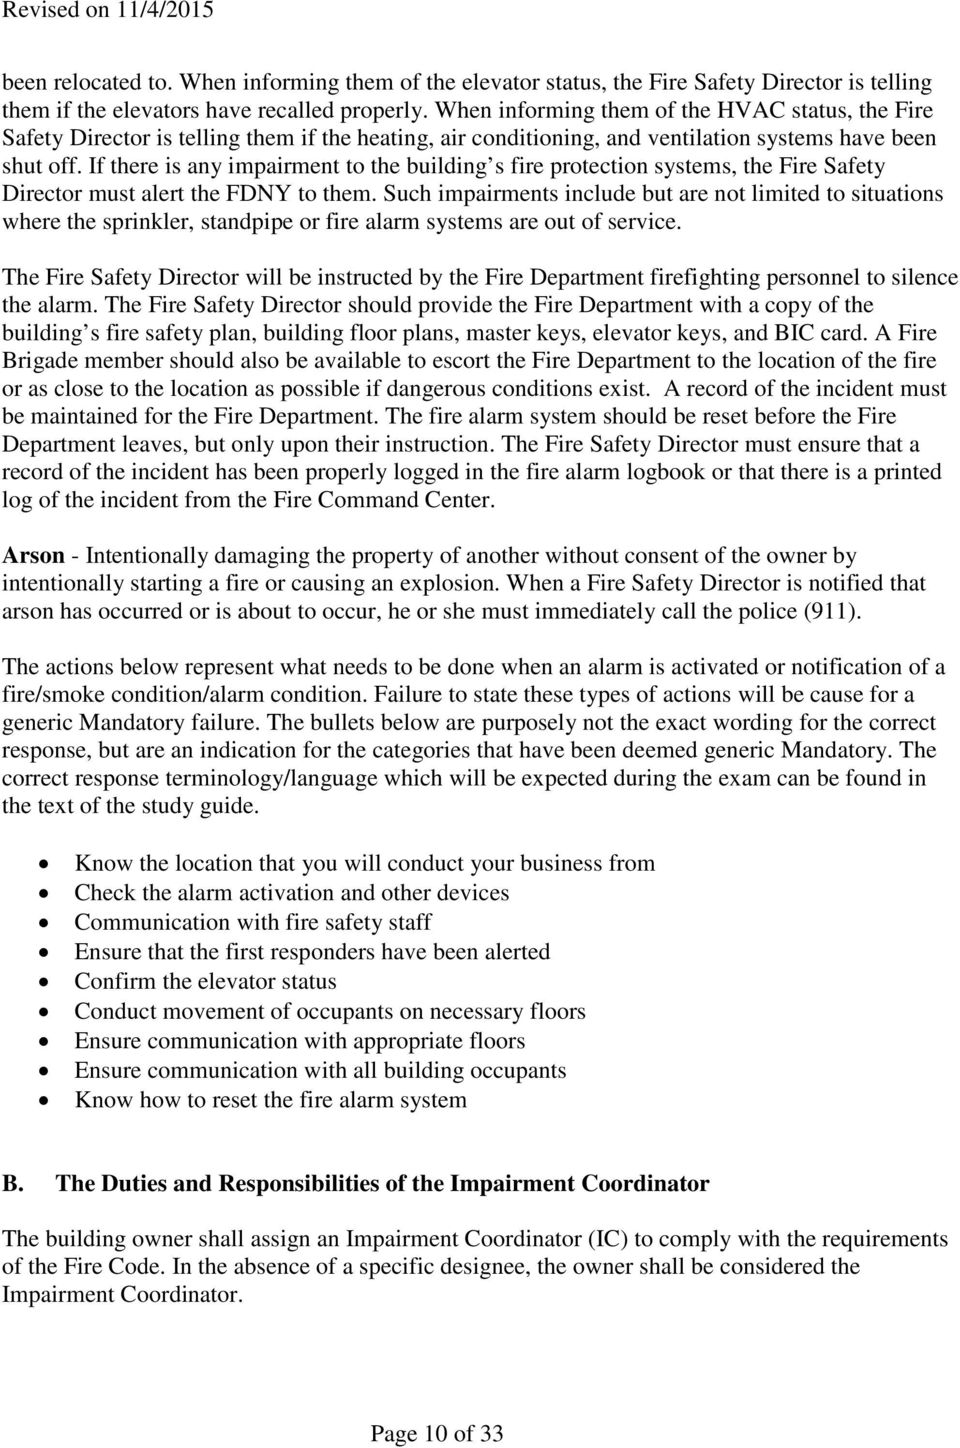 If there is any impairment to the building s fire protection systems, the Fire Safety Director must alert the FDNY to them.